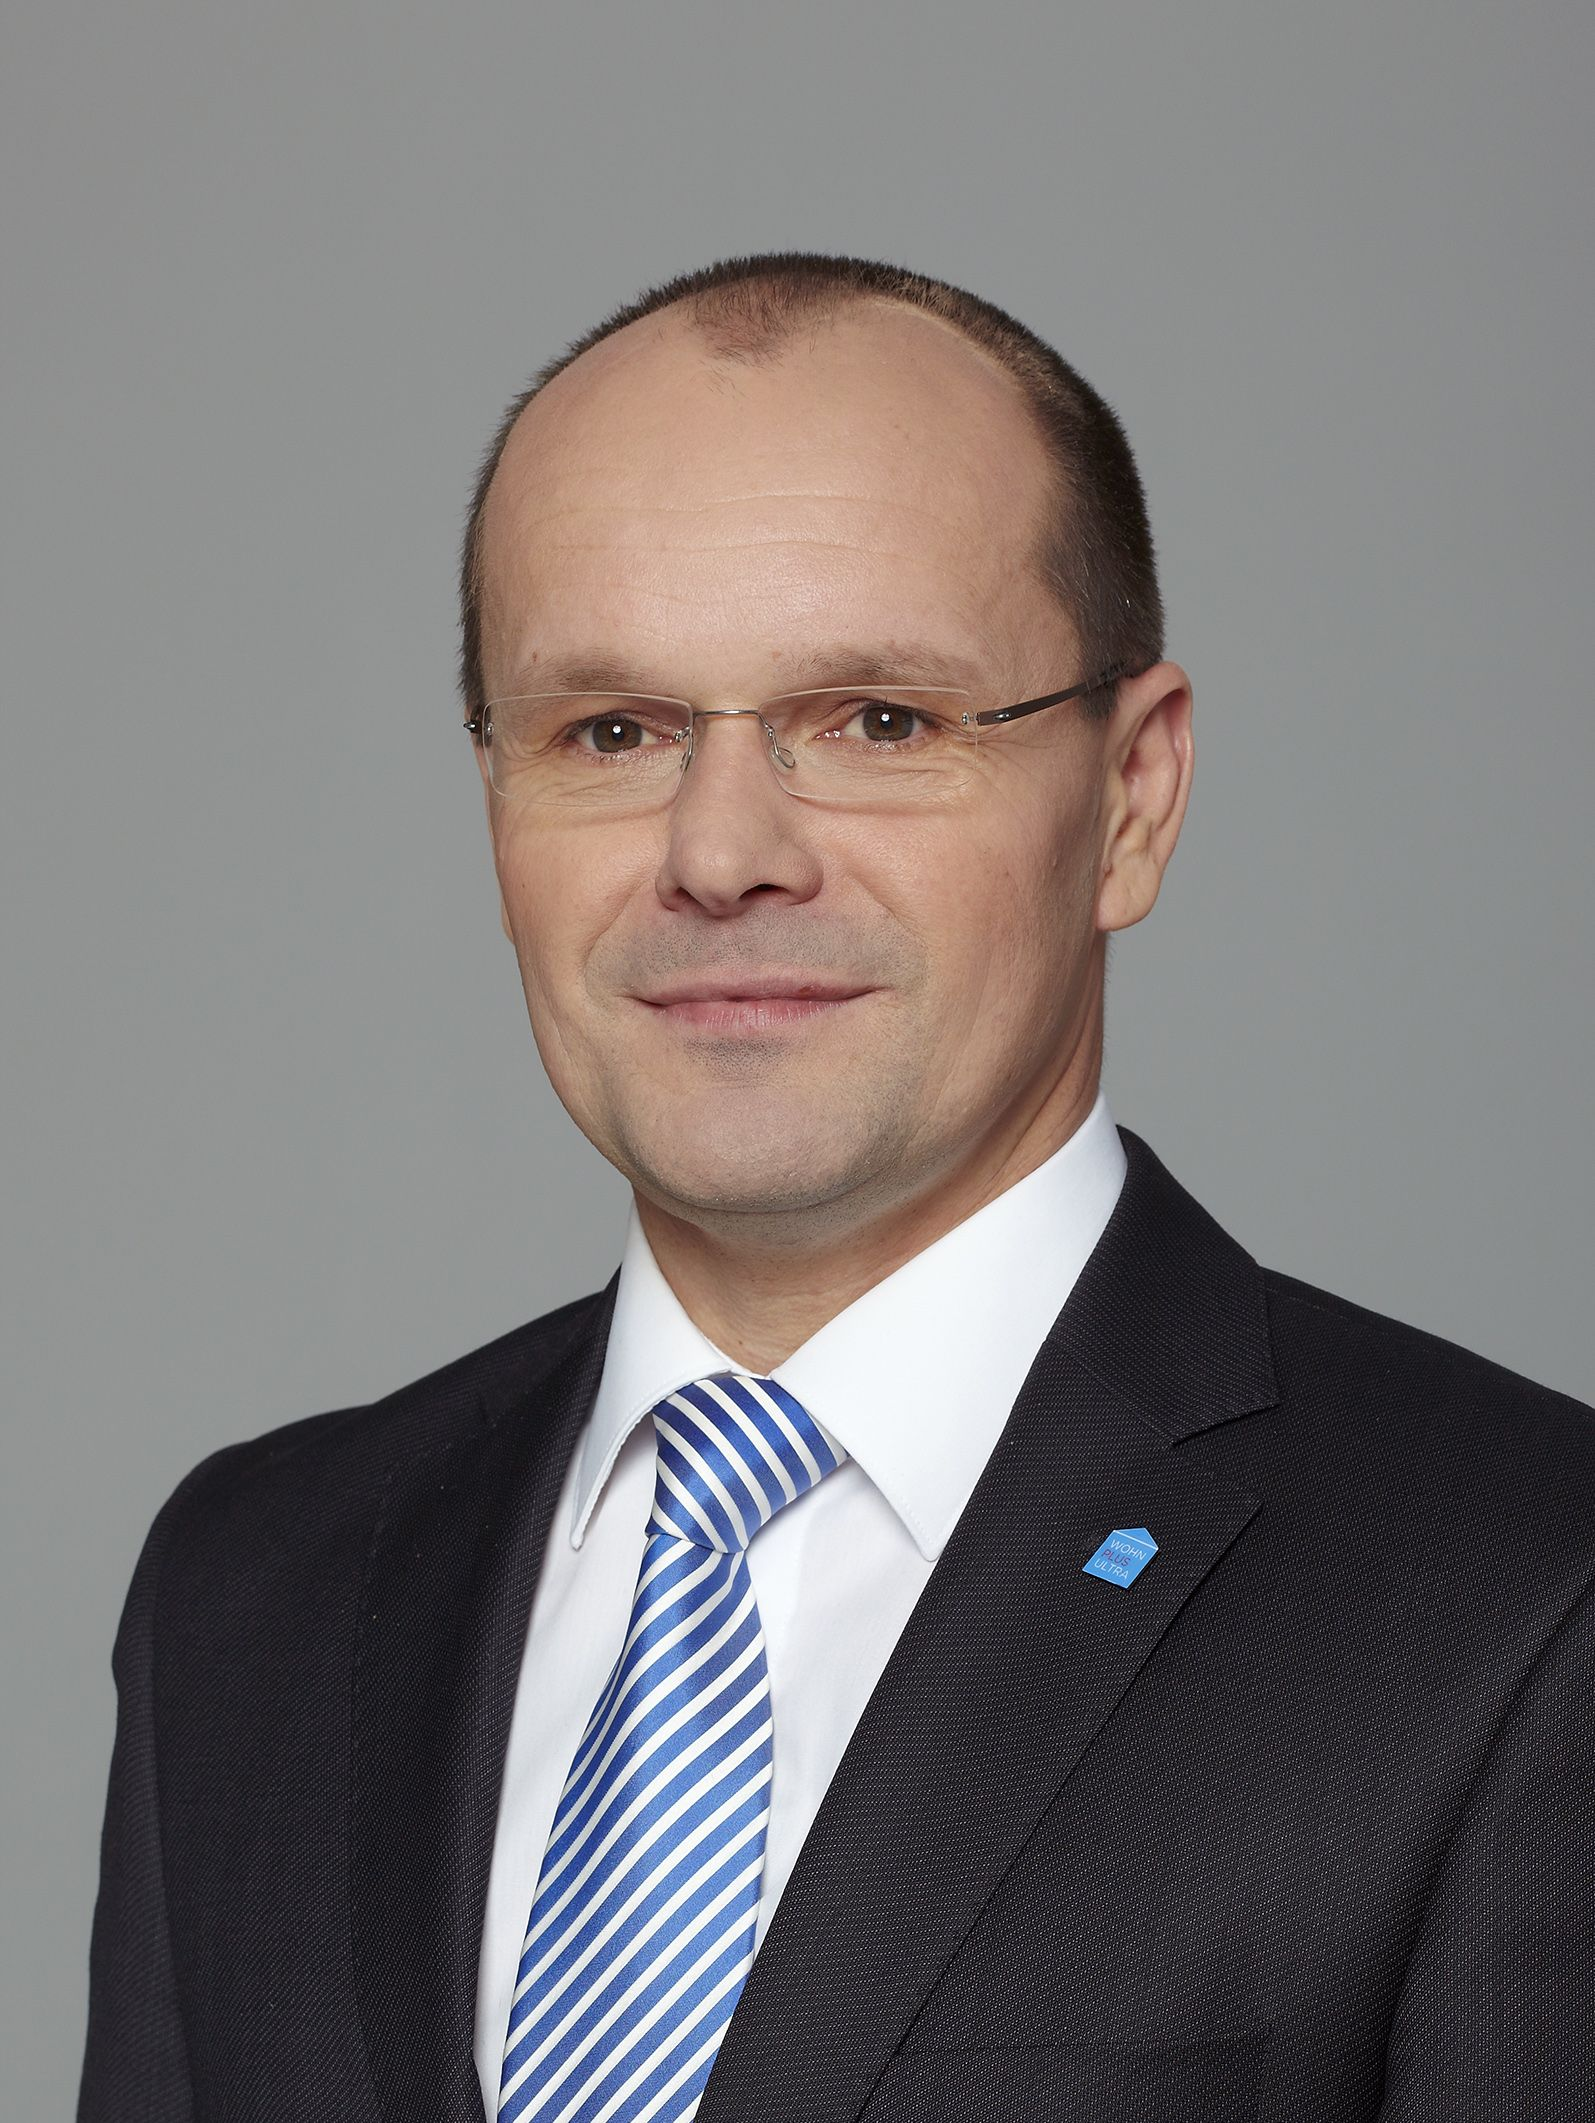 Andreas Höfinger, MBA